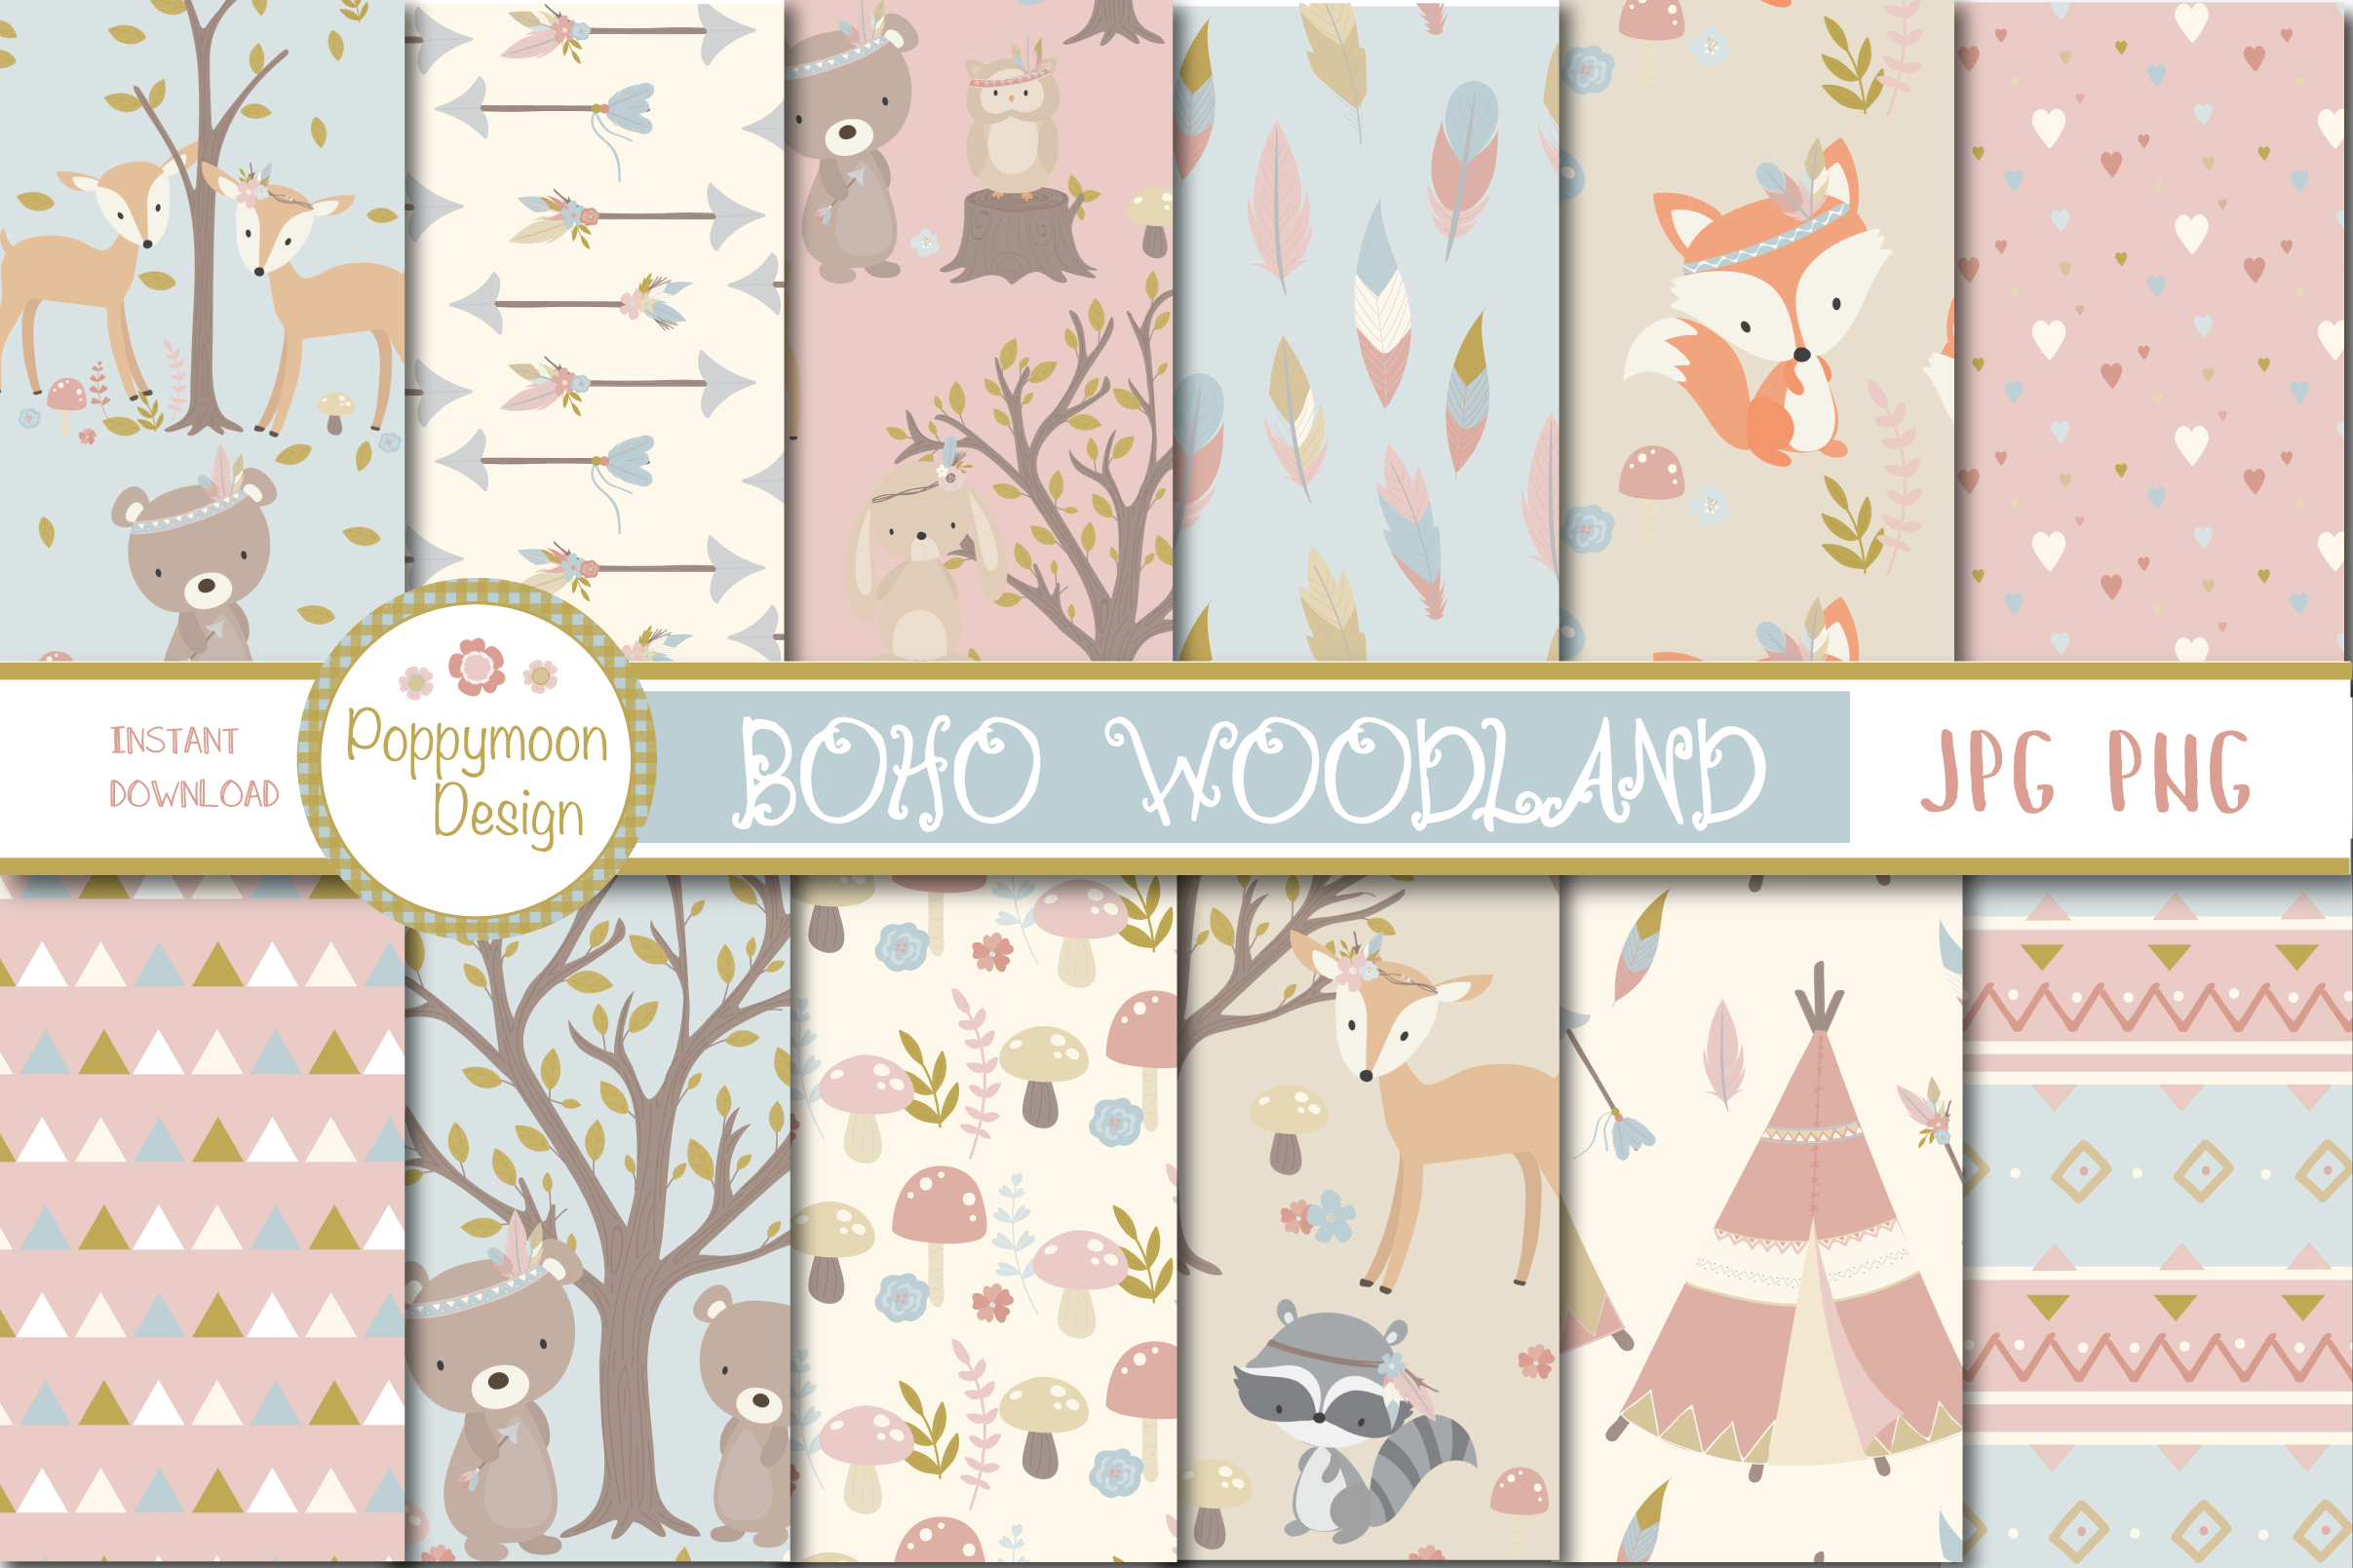 Download Free Boho Woodland Paper Graphic By Poppymoondesign Creative Fabrica for Cricut Explore, Silhouette and other cutting machines.